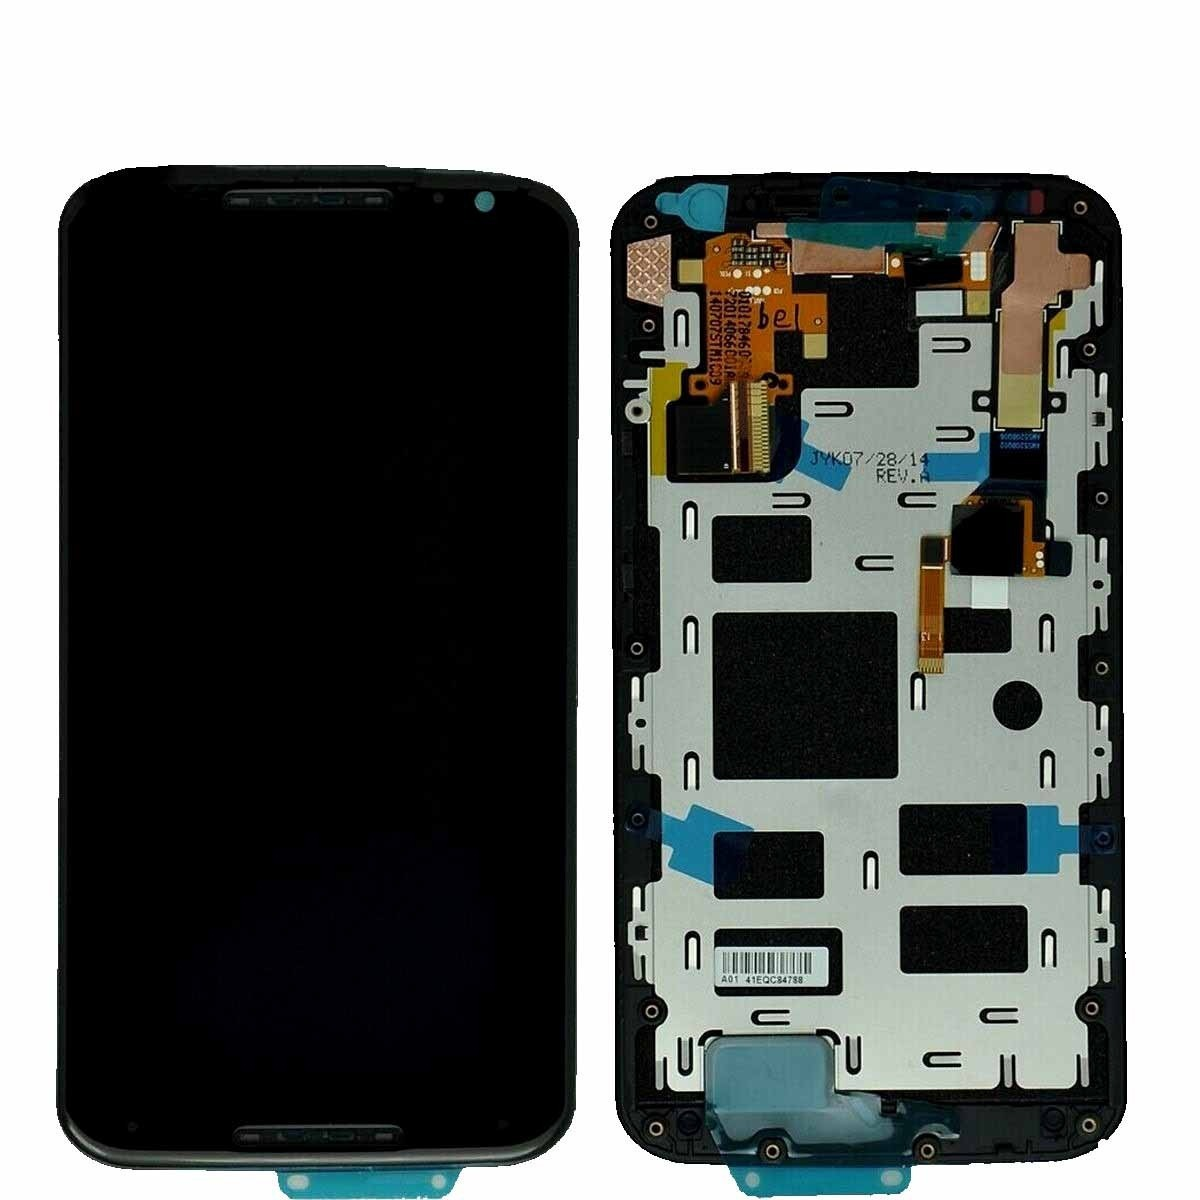 Tela Touch Display Lcd Motorola Moto X2 X +1 XT1097 XT1098 Original